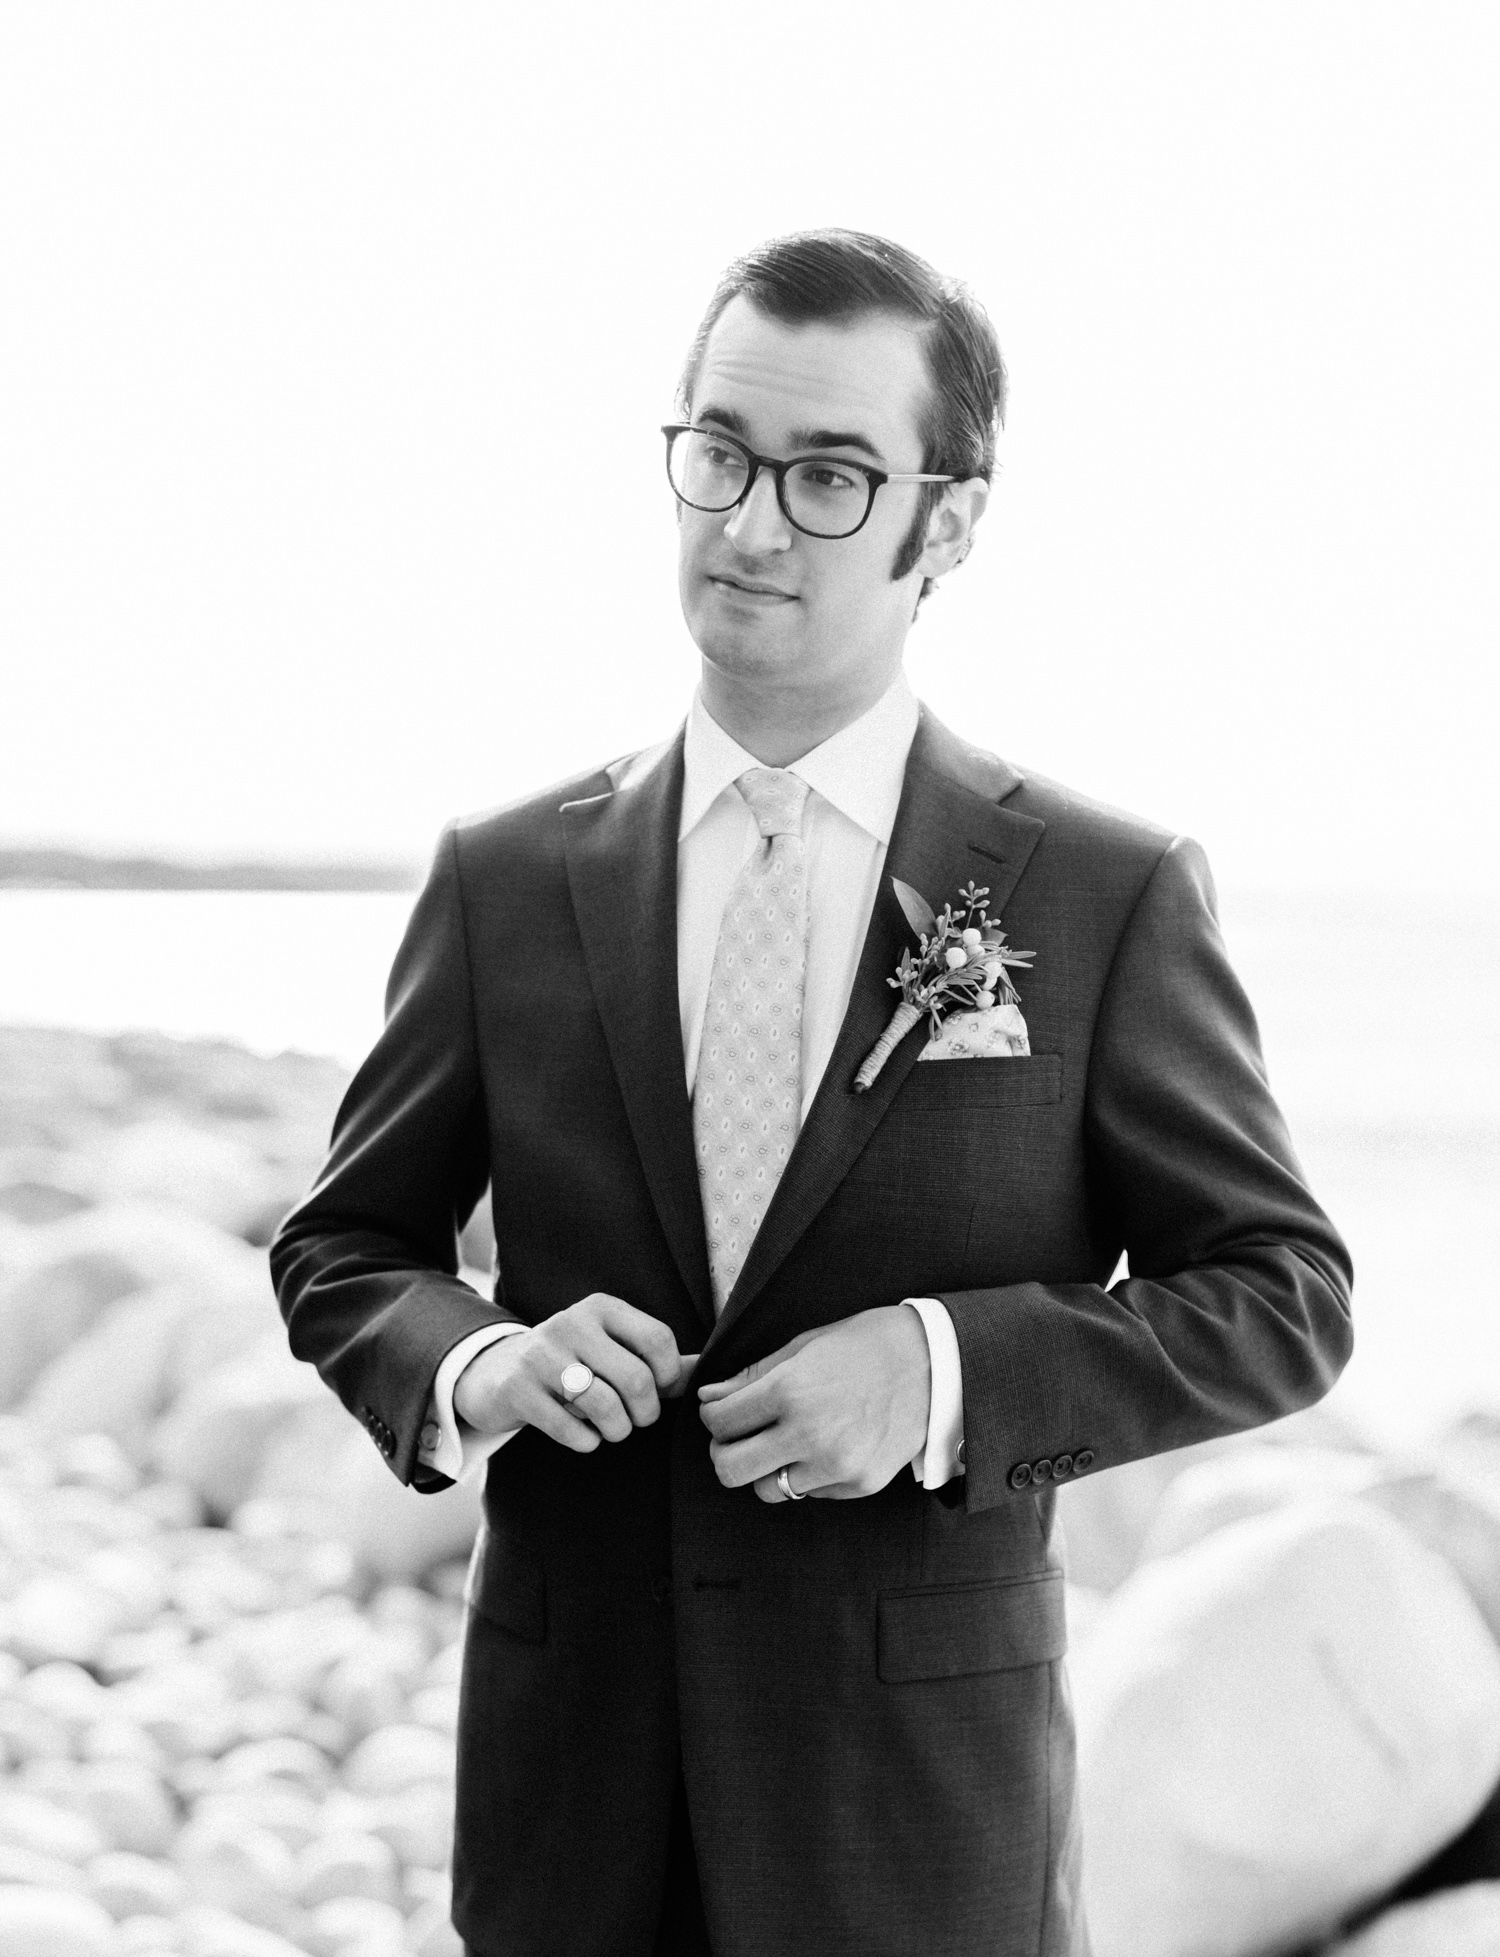 A groom with 70's style buttons his jacket before seeing his bride during their Northern Michigan wedding